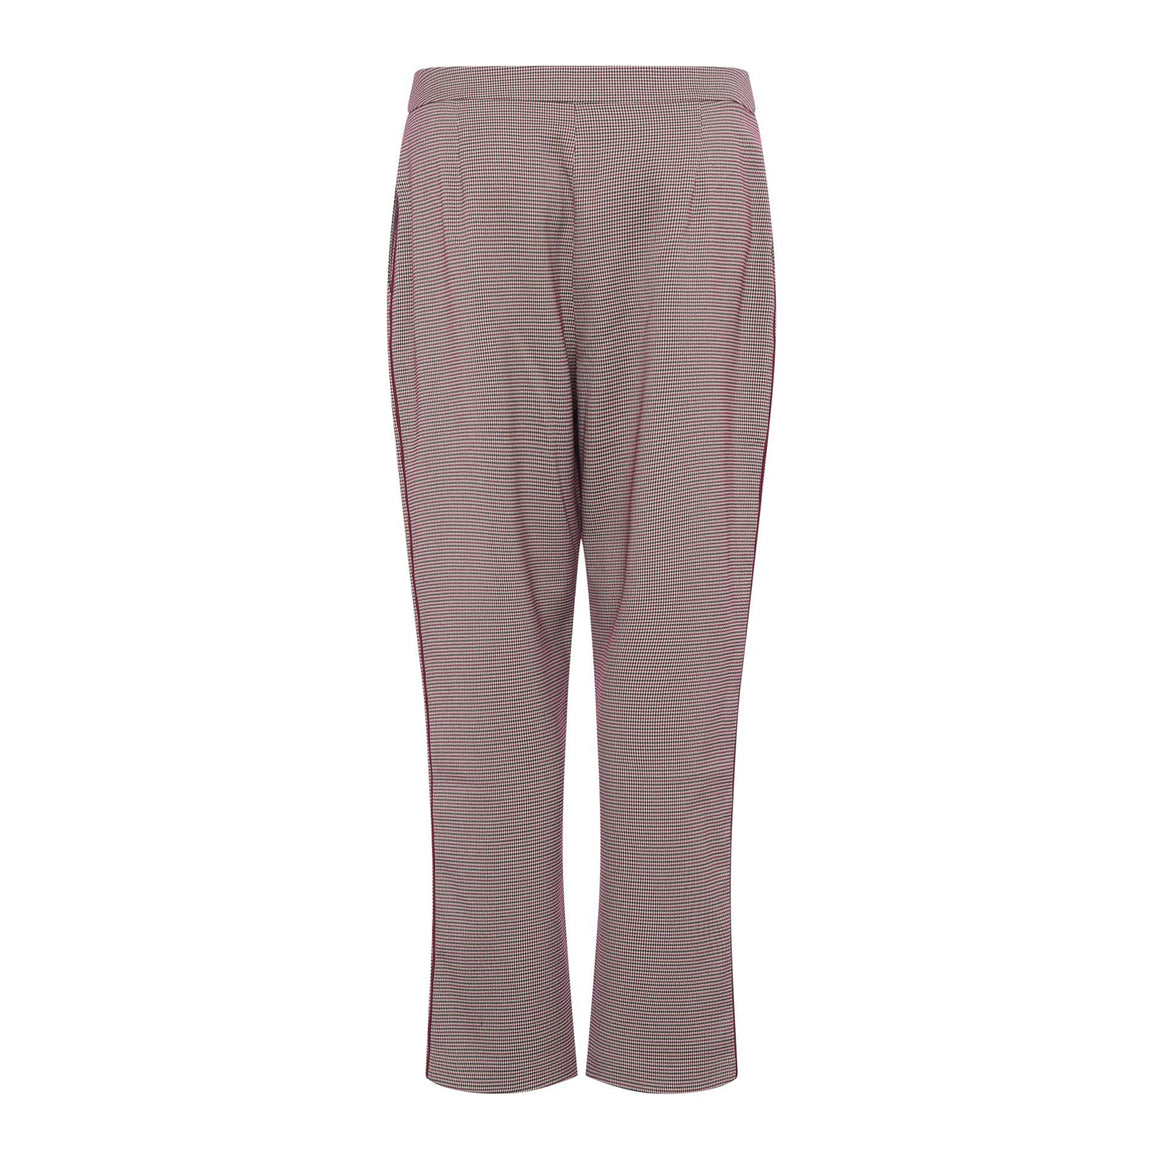 Risby Check Trouser for Women in Multi